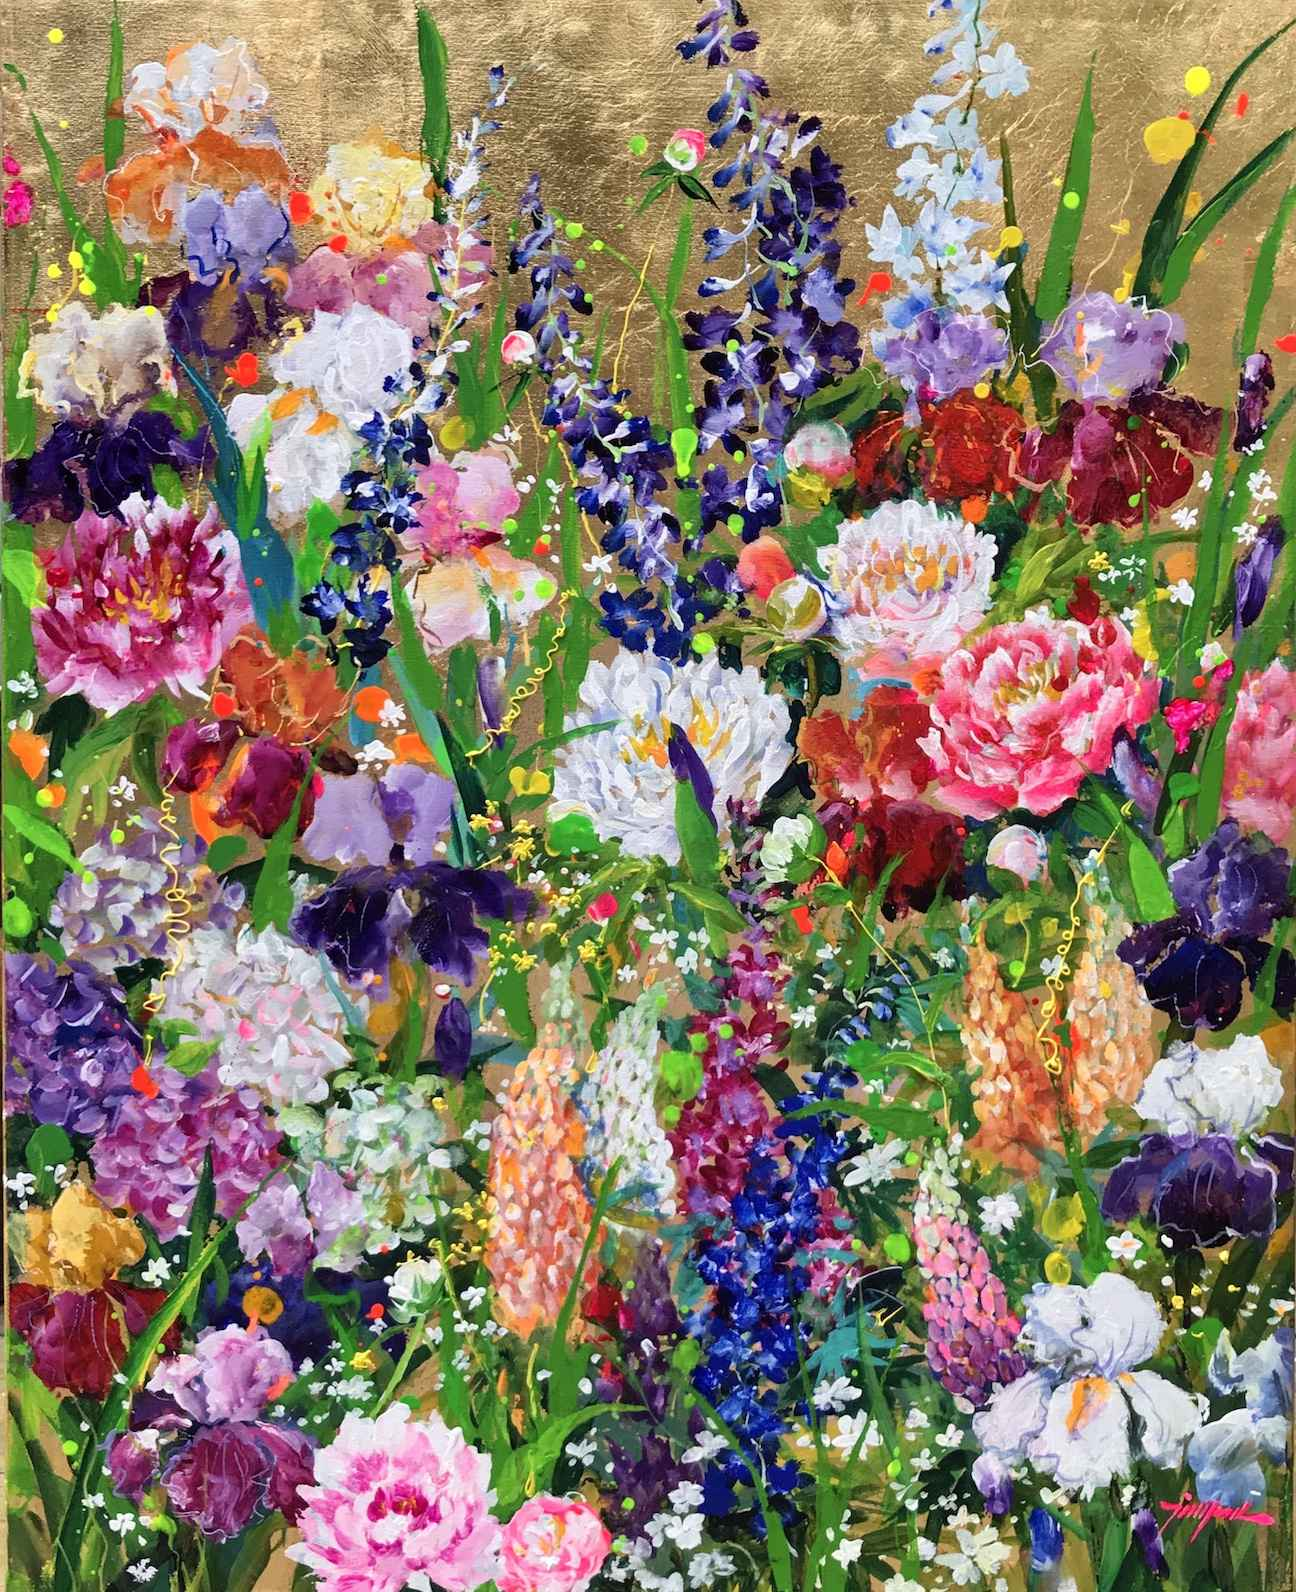 The Blooming Wonders by  Tinyan Chan - Masterpiece Online